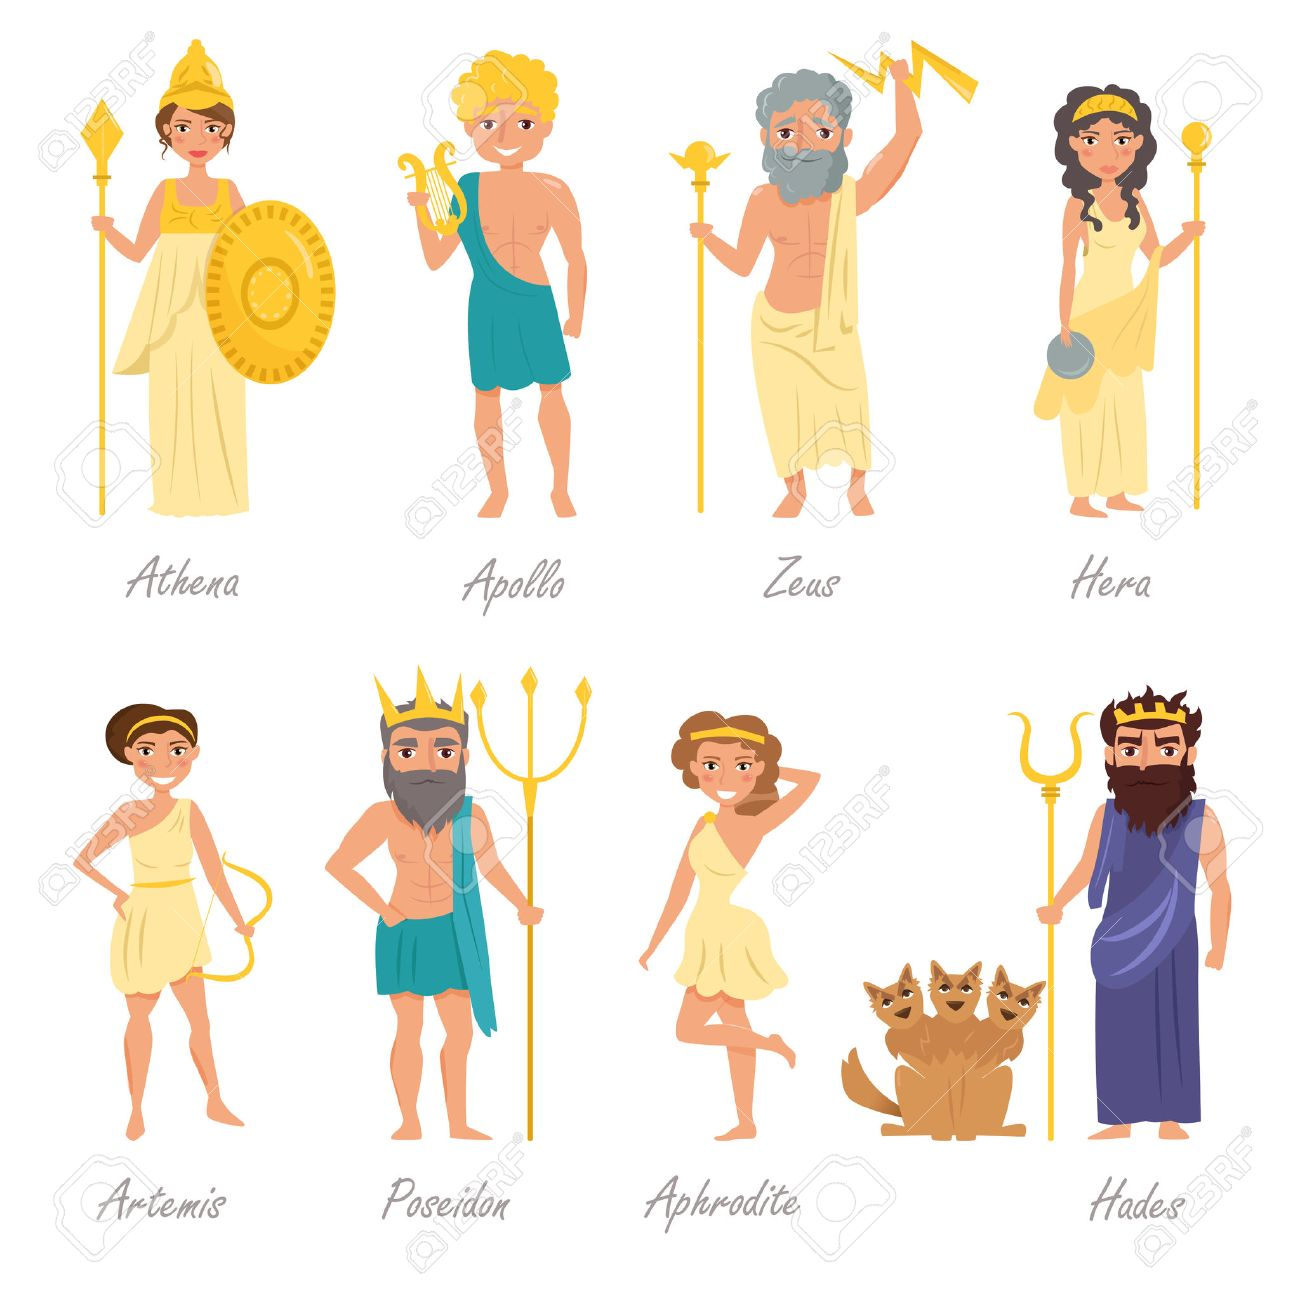 669 pantheon stock vector illustration and royalty free pantheon clipart rh 123rf com